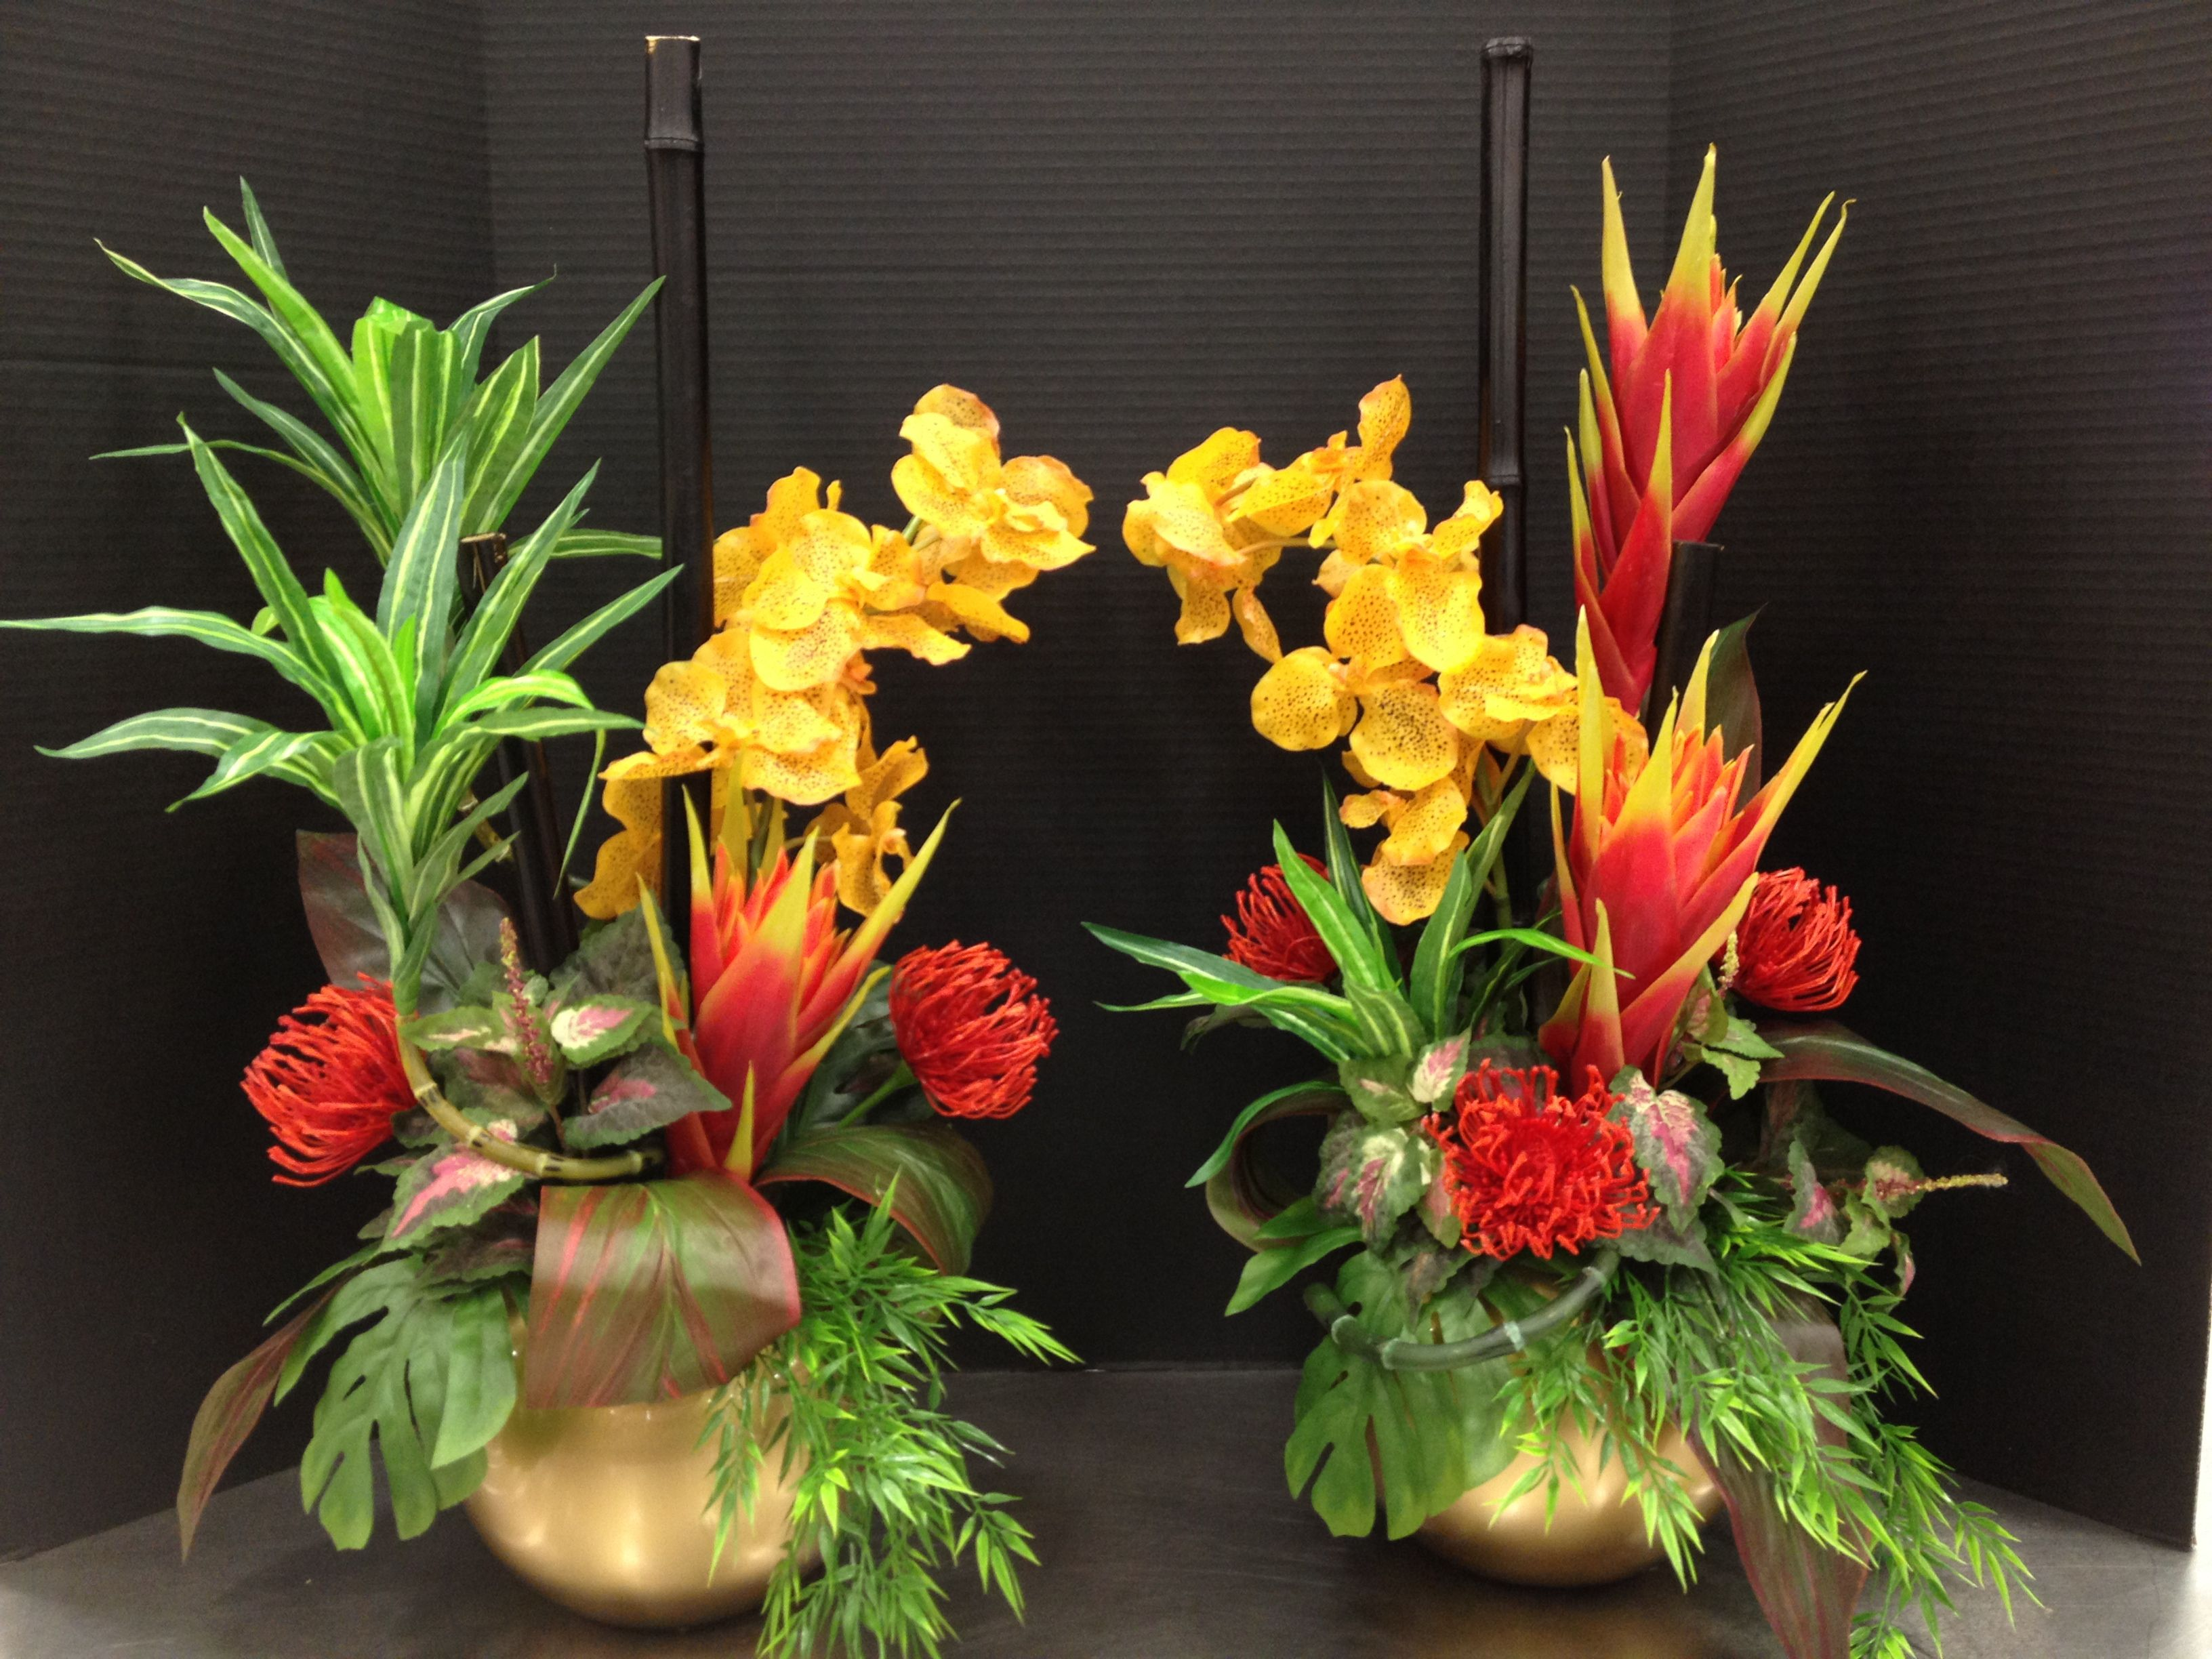 Chinese New Year 2013 (Small) Inspired Floral Arrangements Designed By